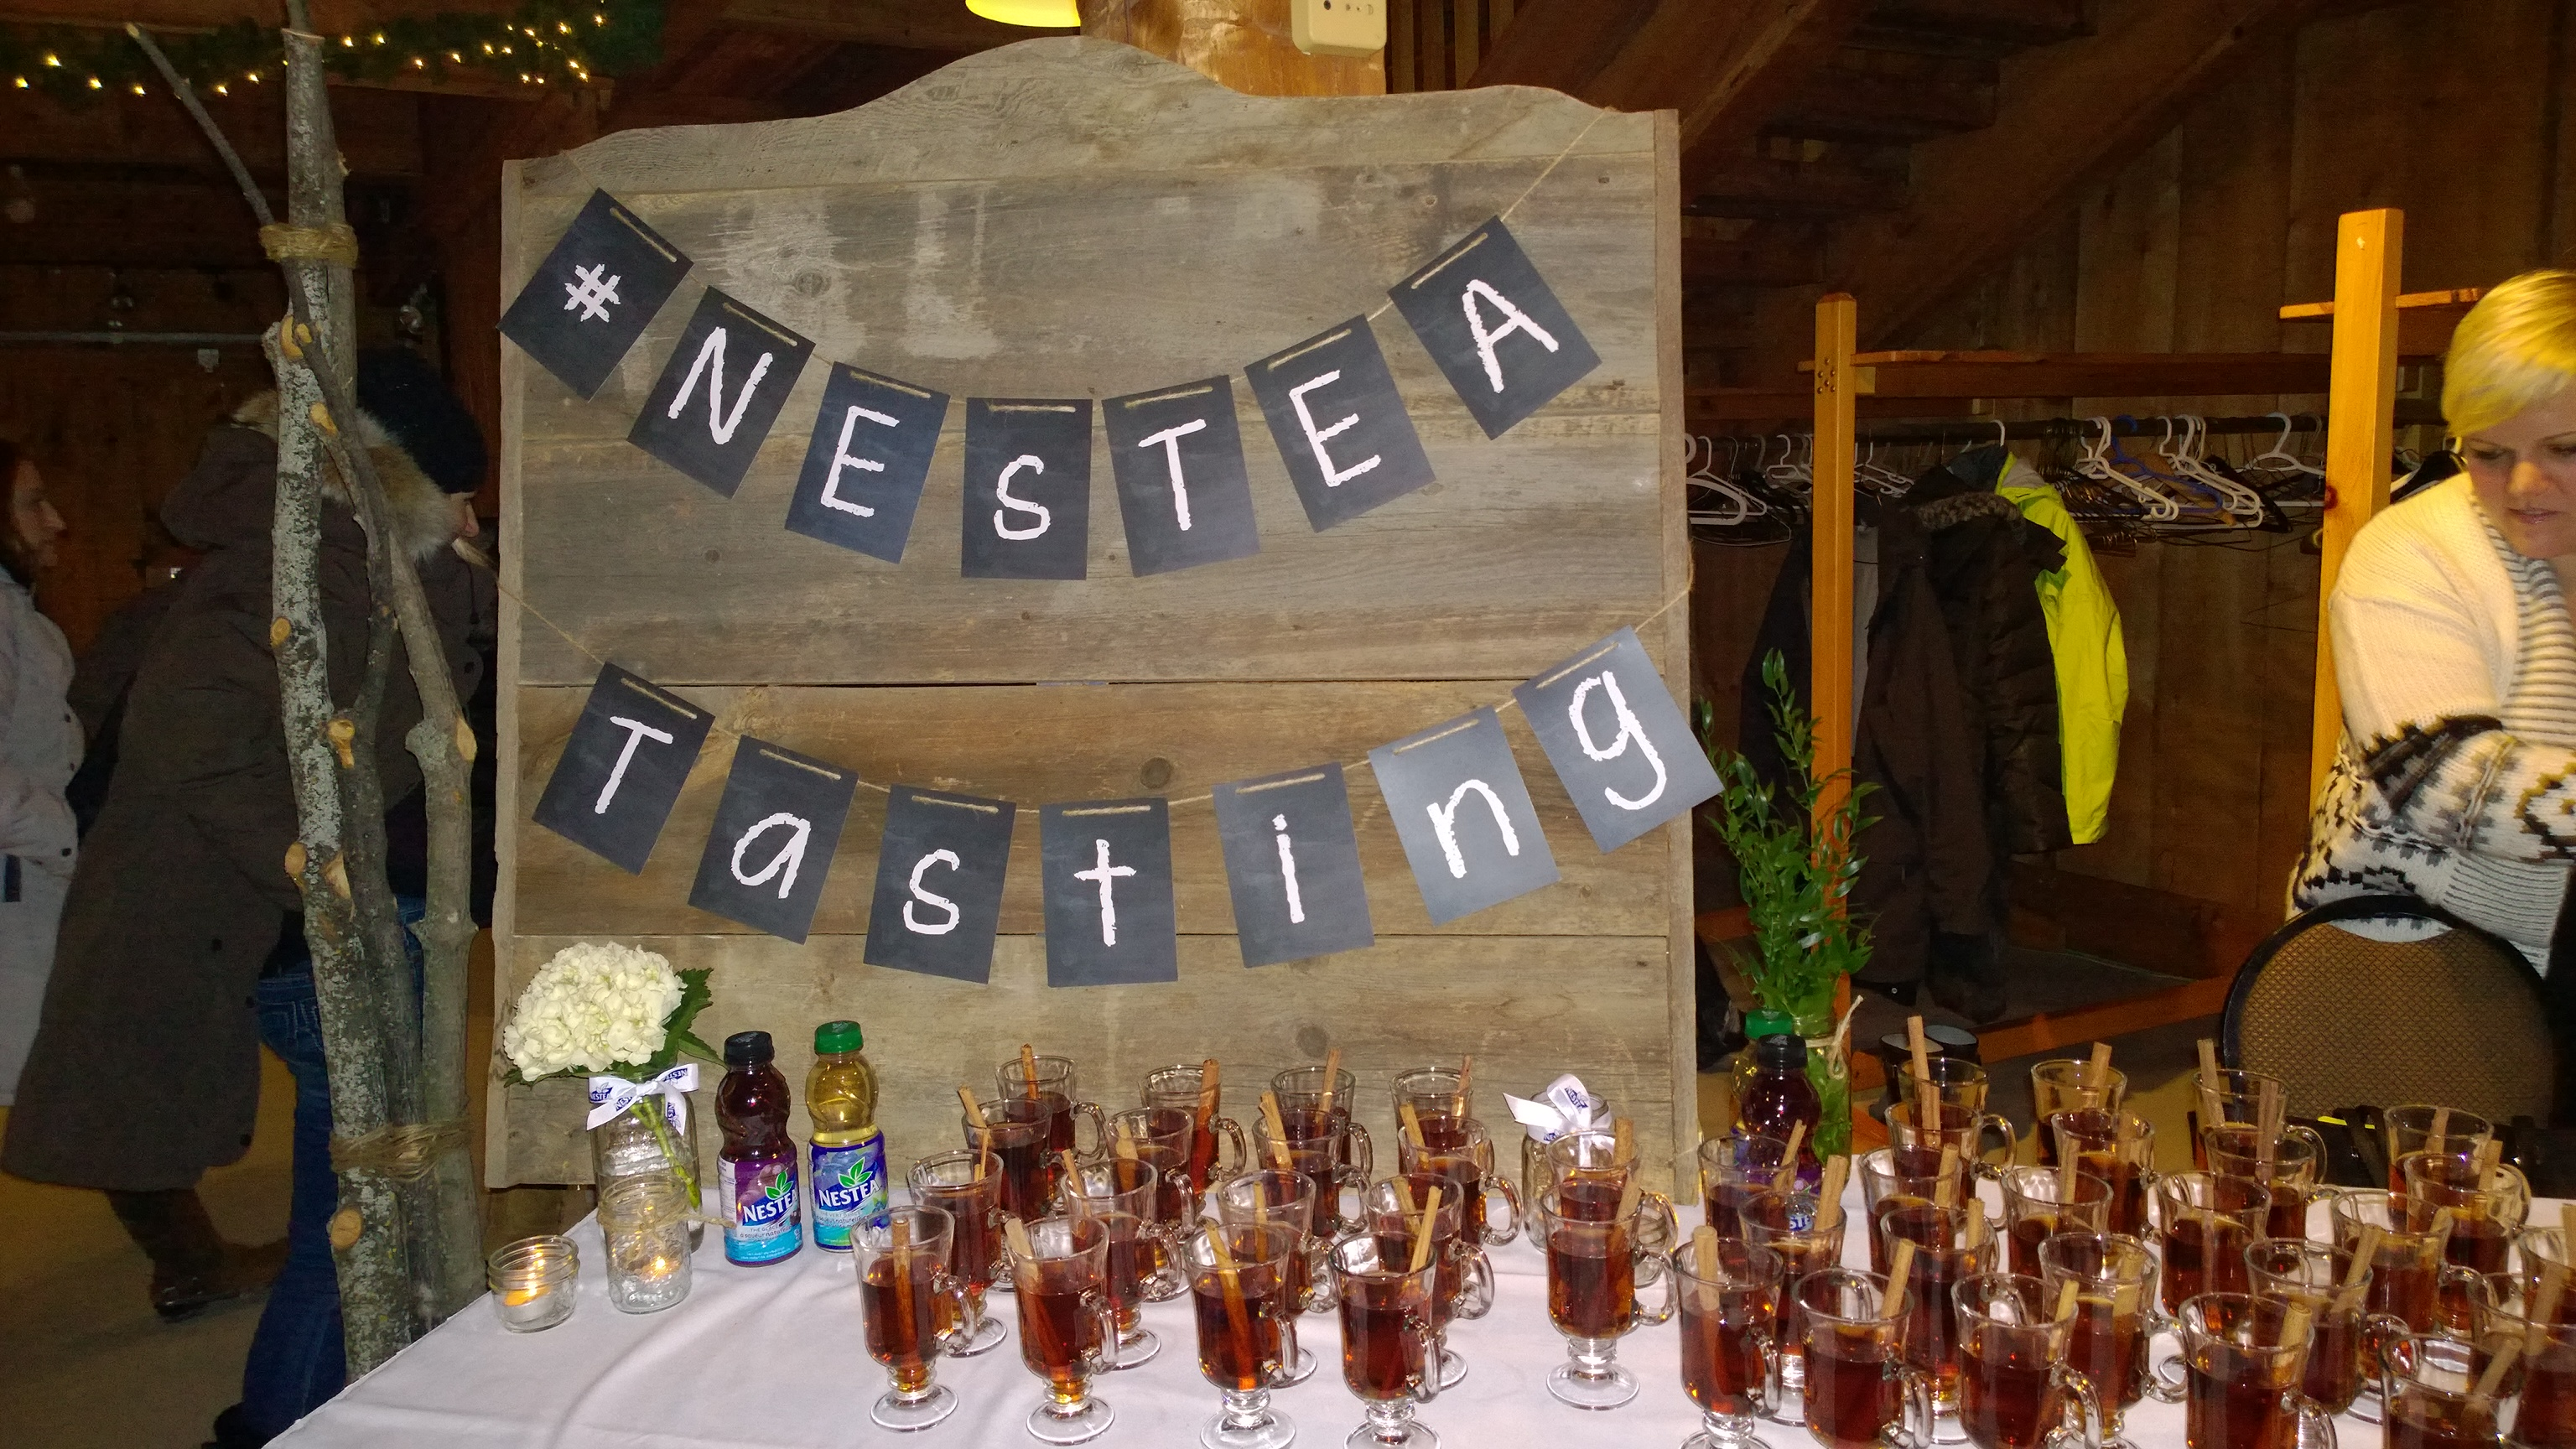 Nestea Launches New Flavours with a Northern Trip